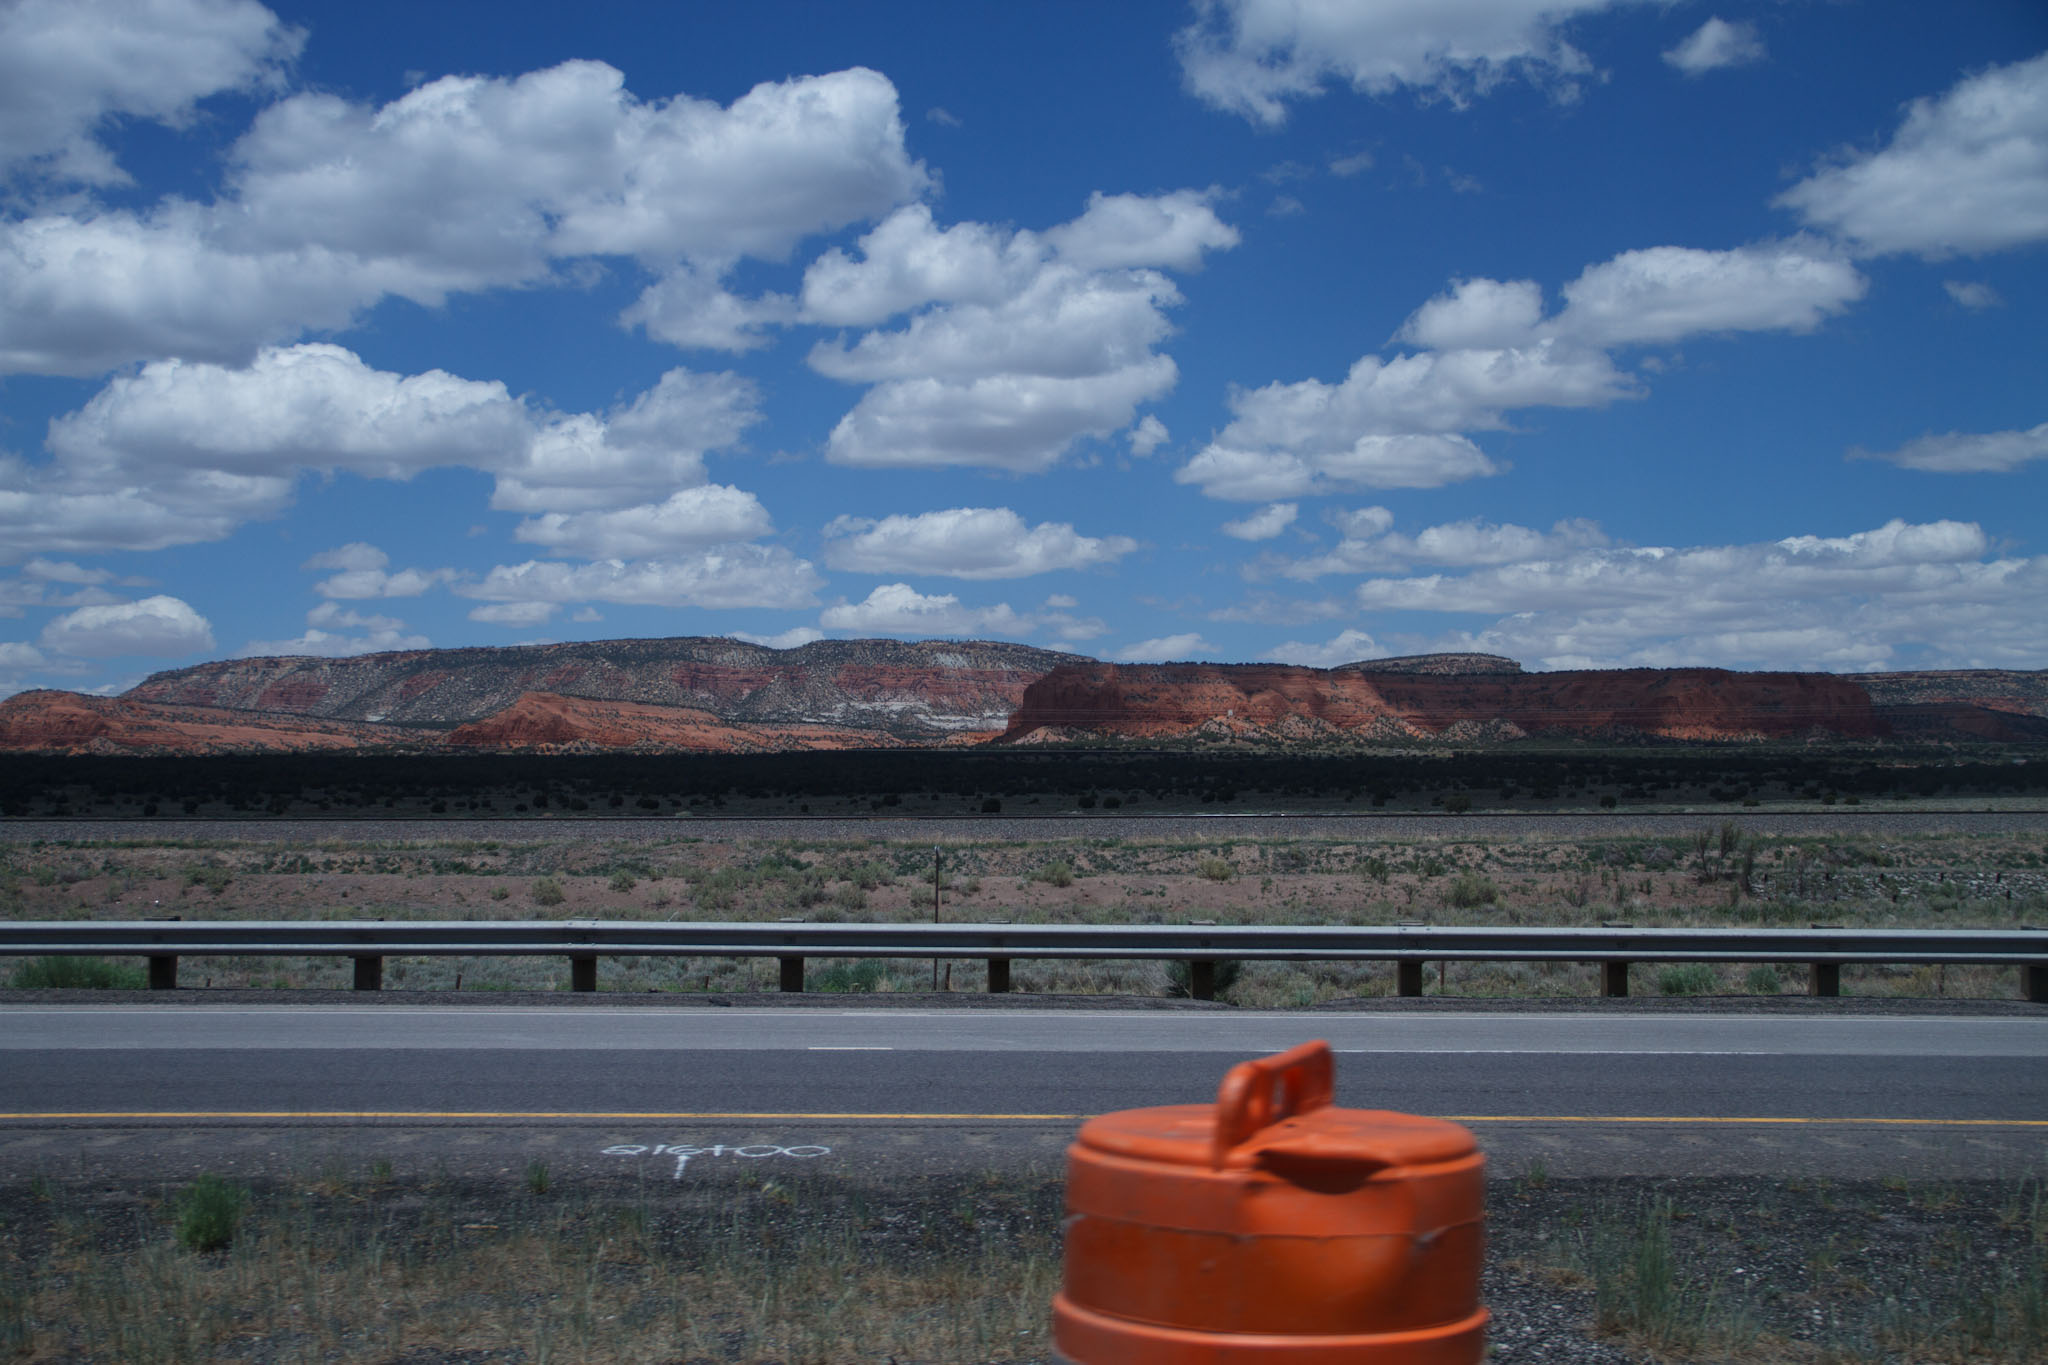 New Mexico roadscape